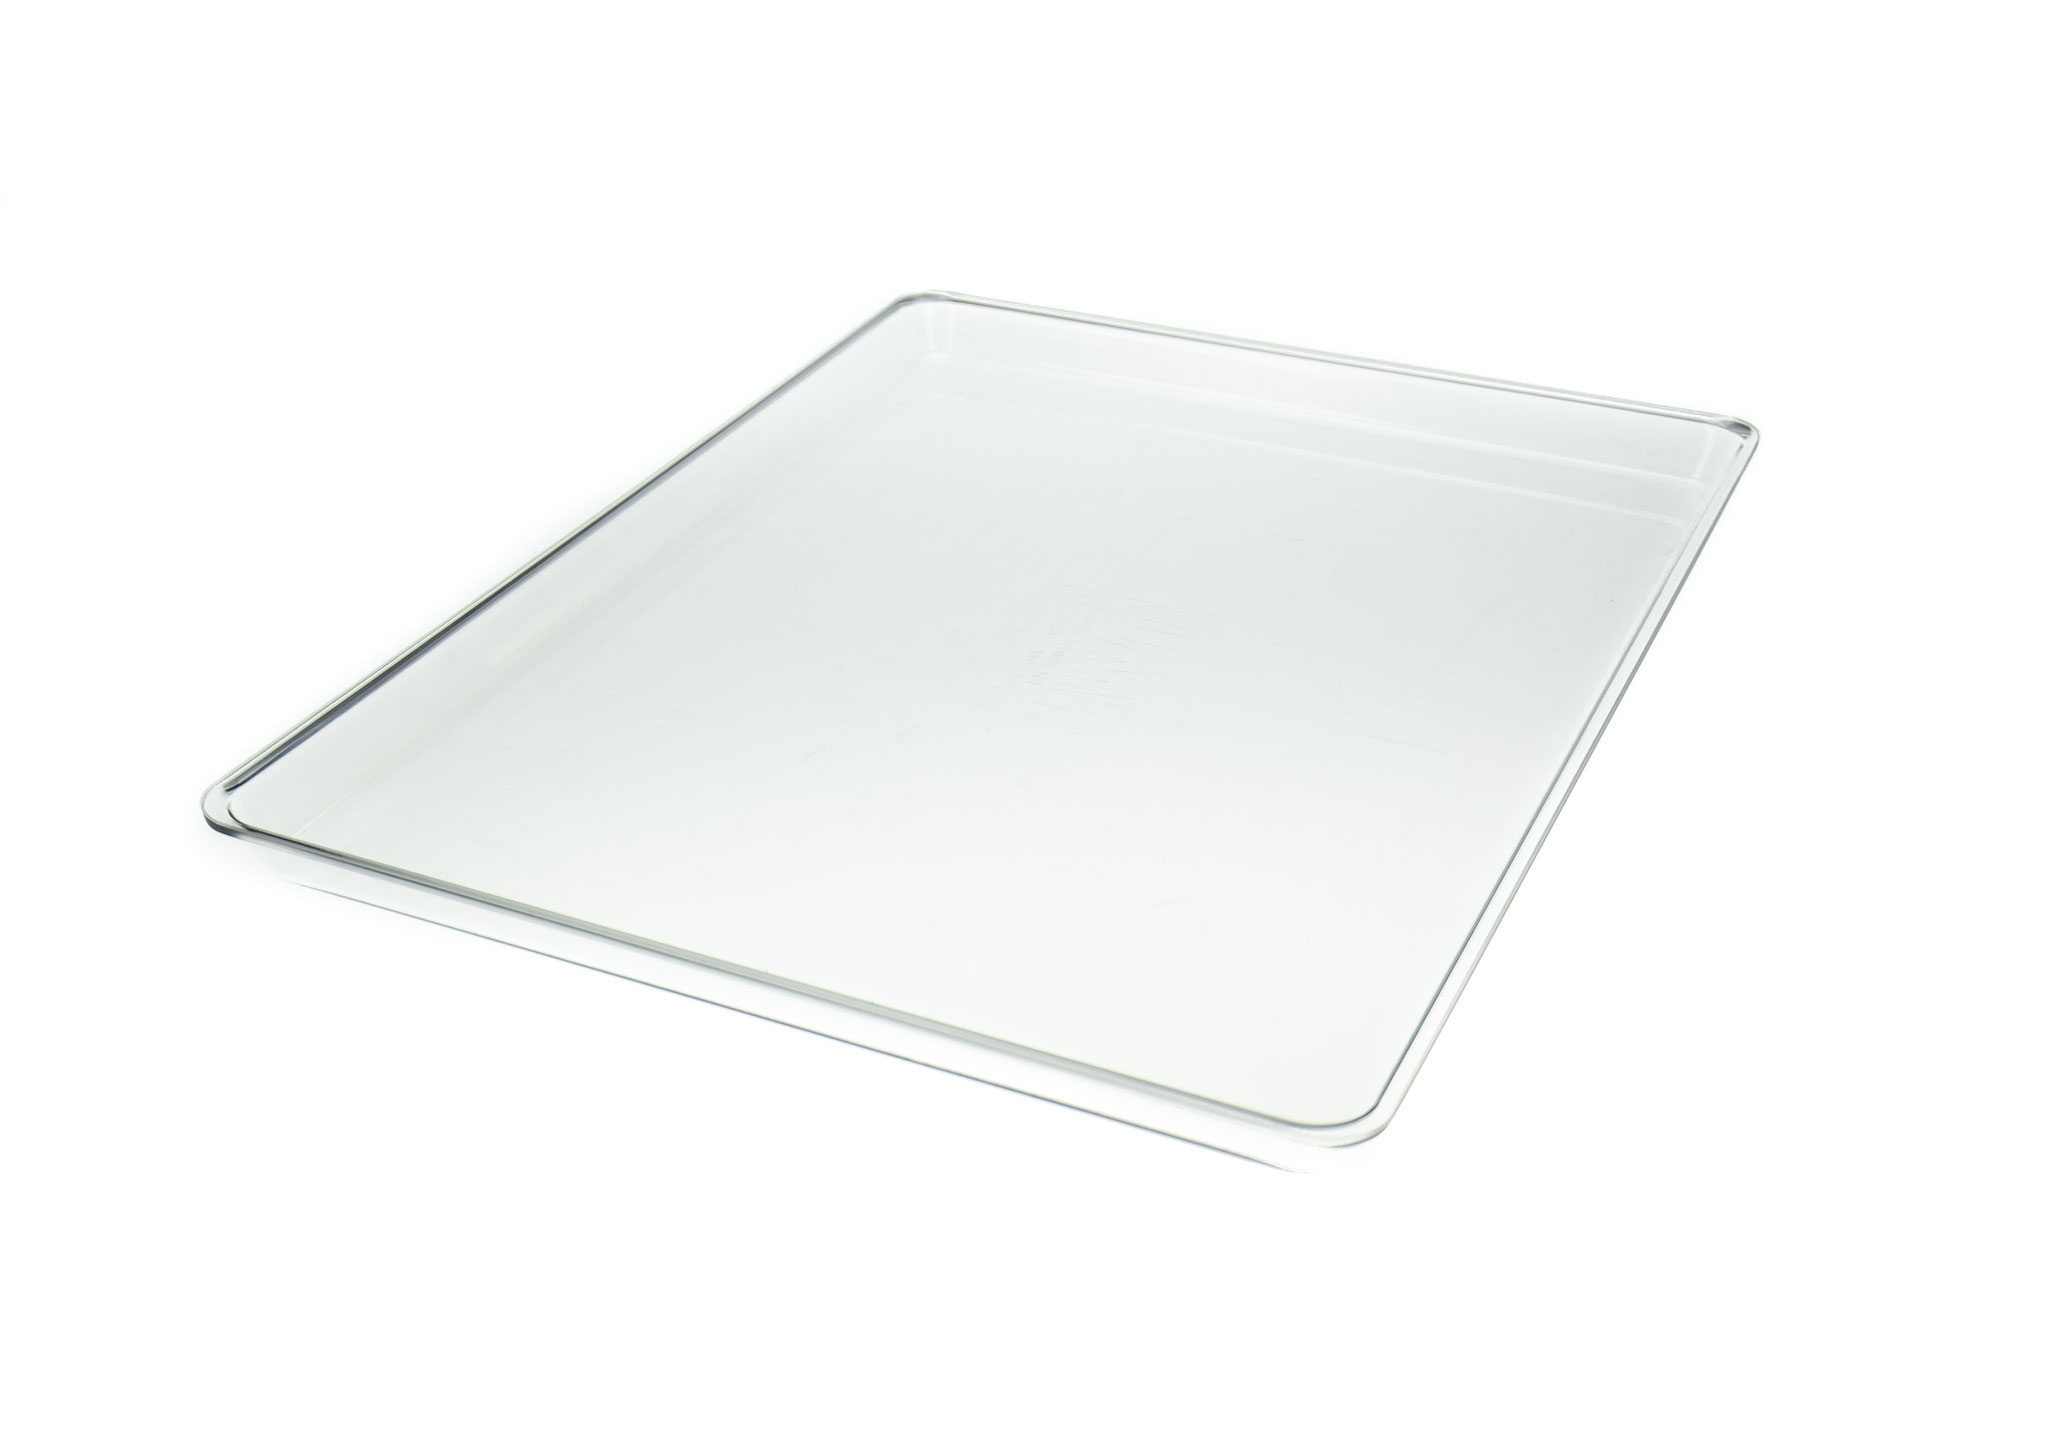 Auslegetablett transparent 16, 400x300mm